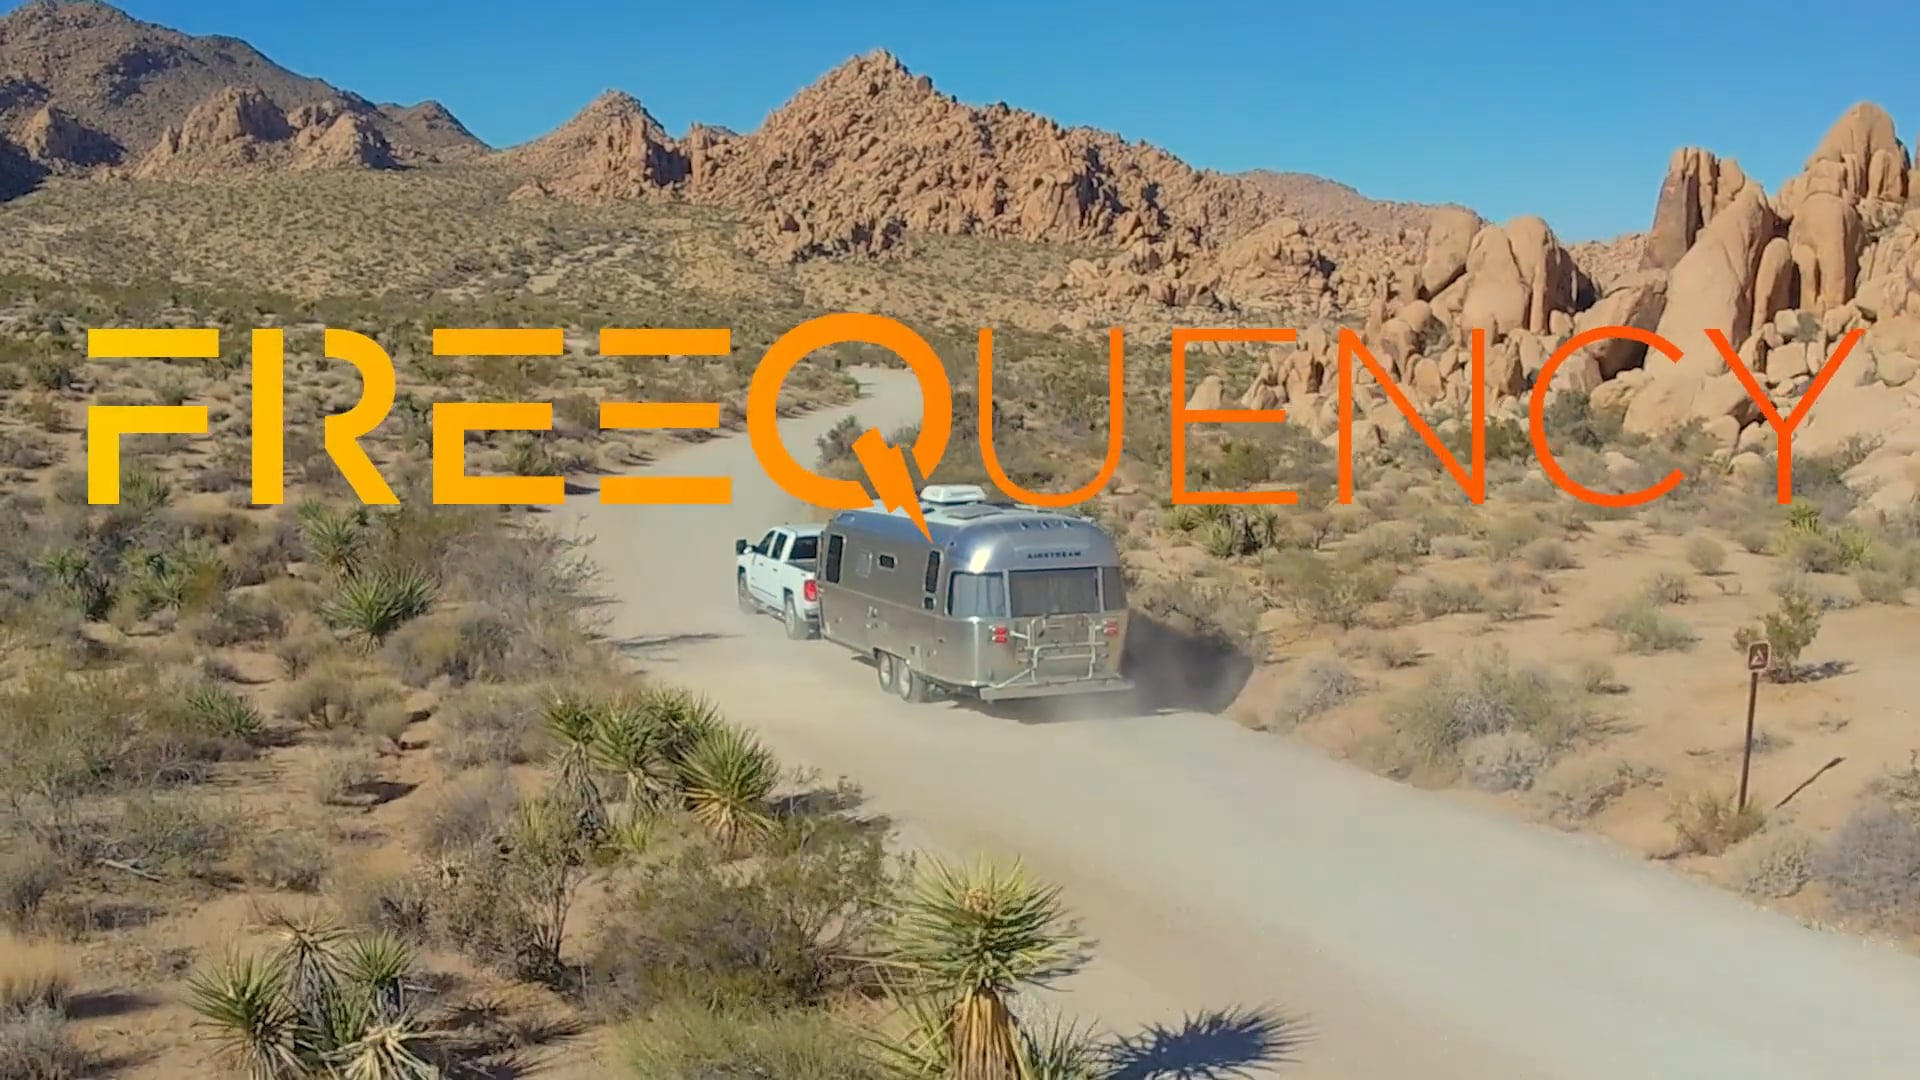 FREEQUENCY: On The Road (Season 1)